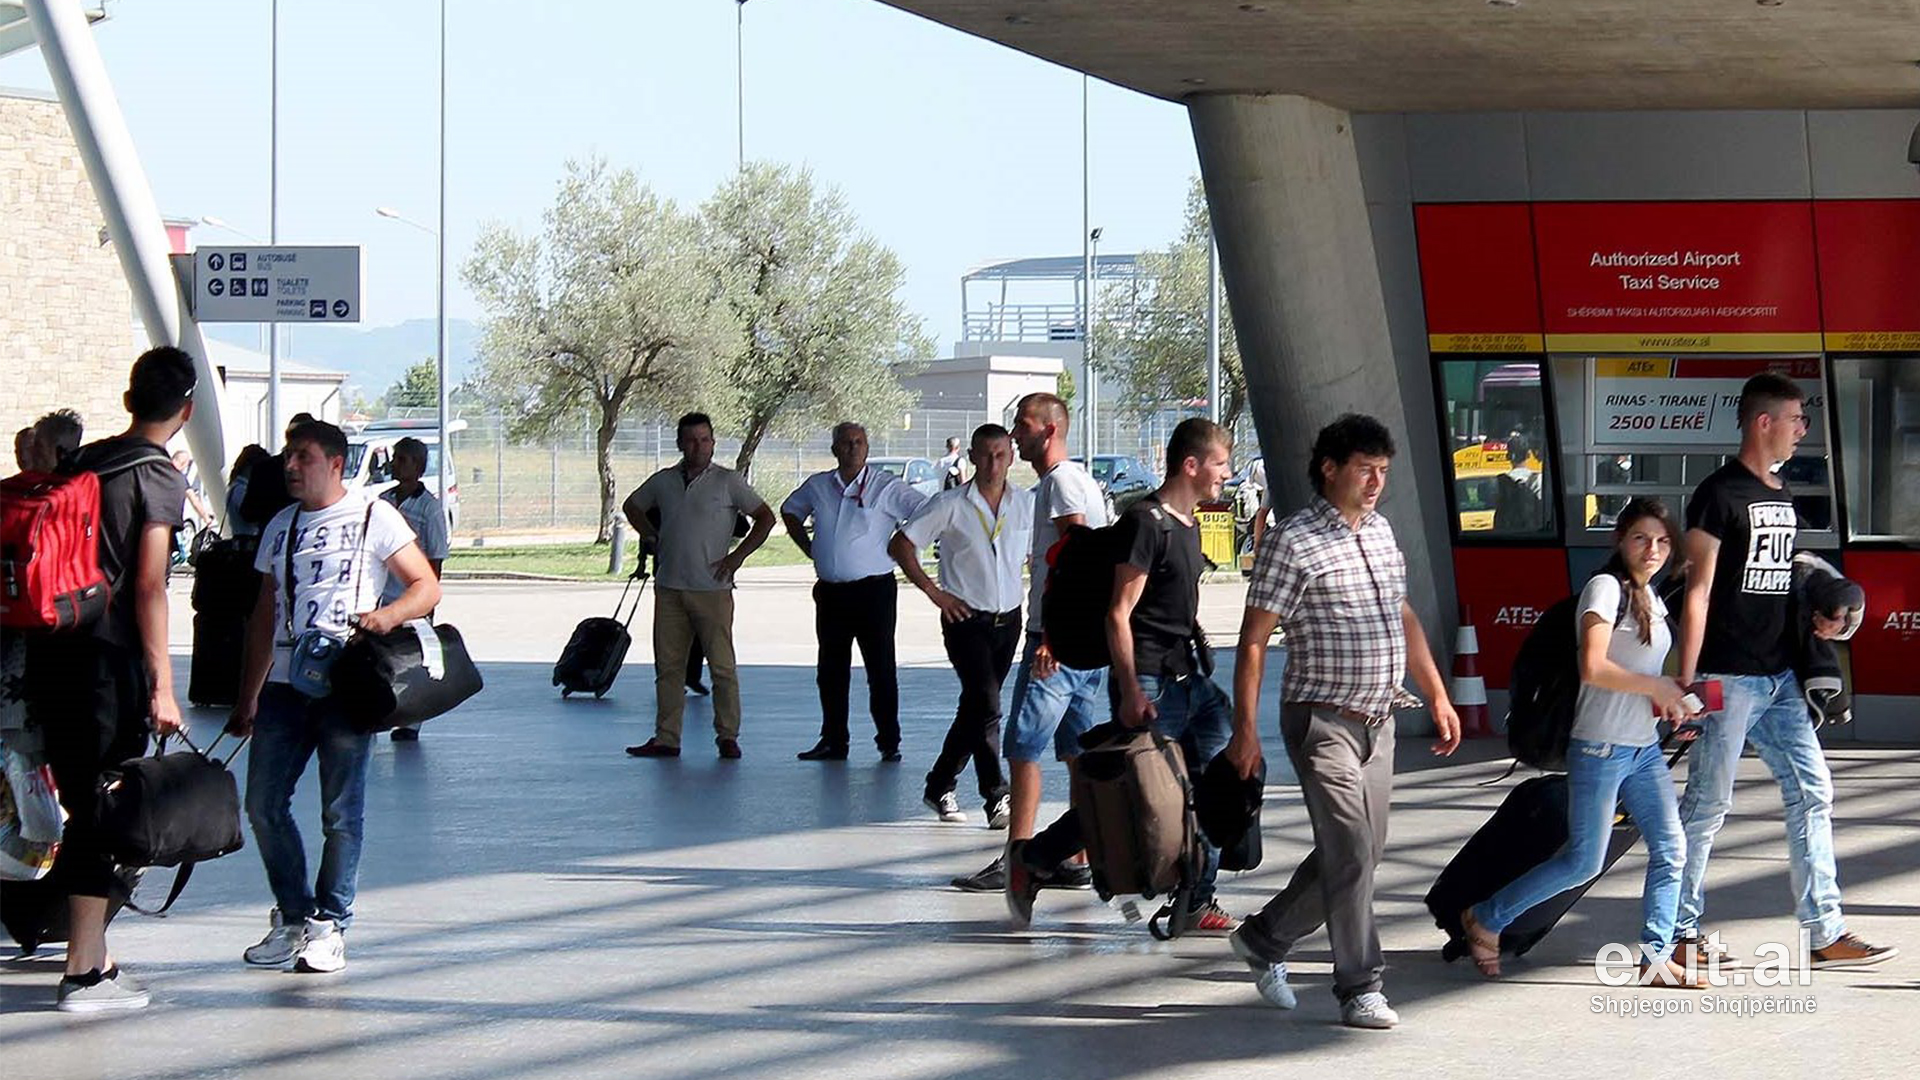 France Repatriates 219 Albanians Who Overstayed or Sought Asylum in the Schengen Area